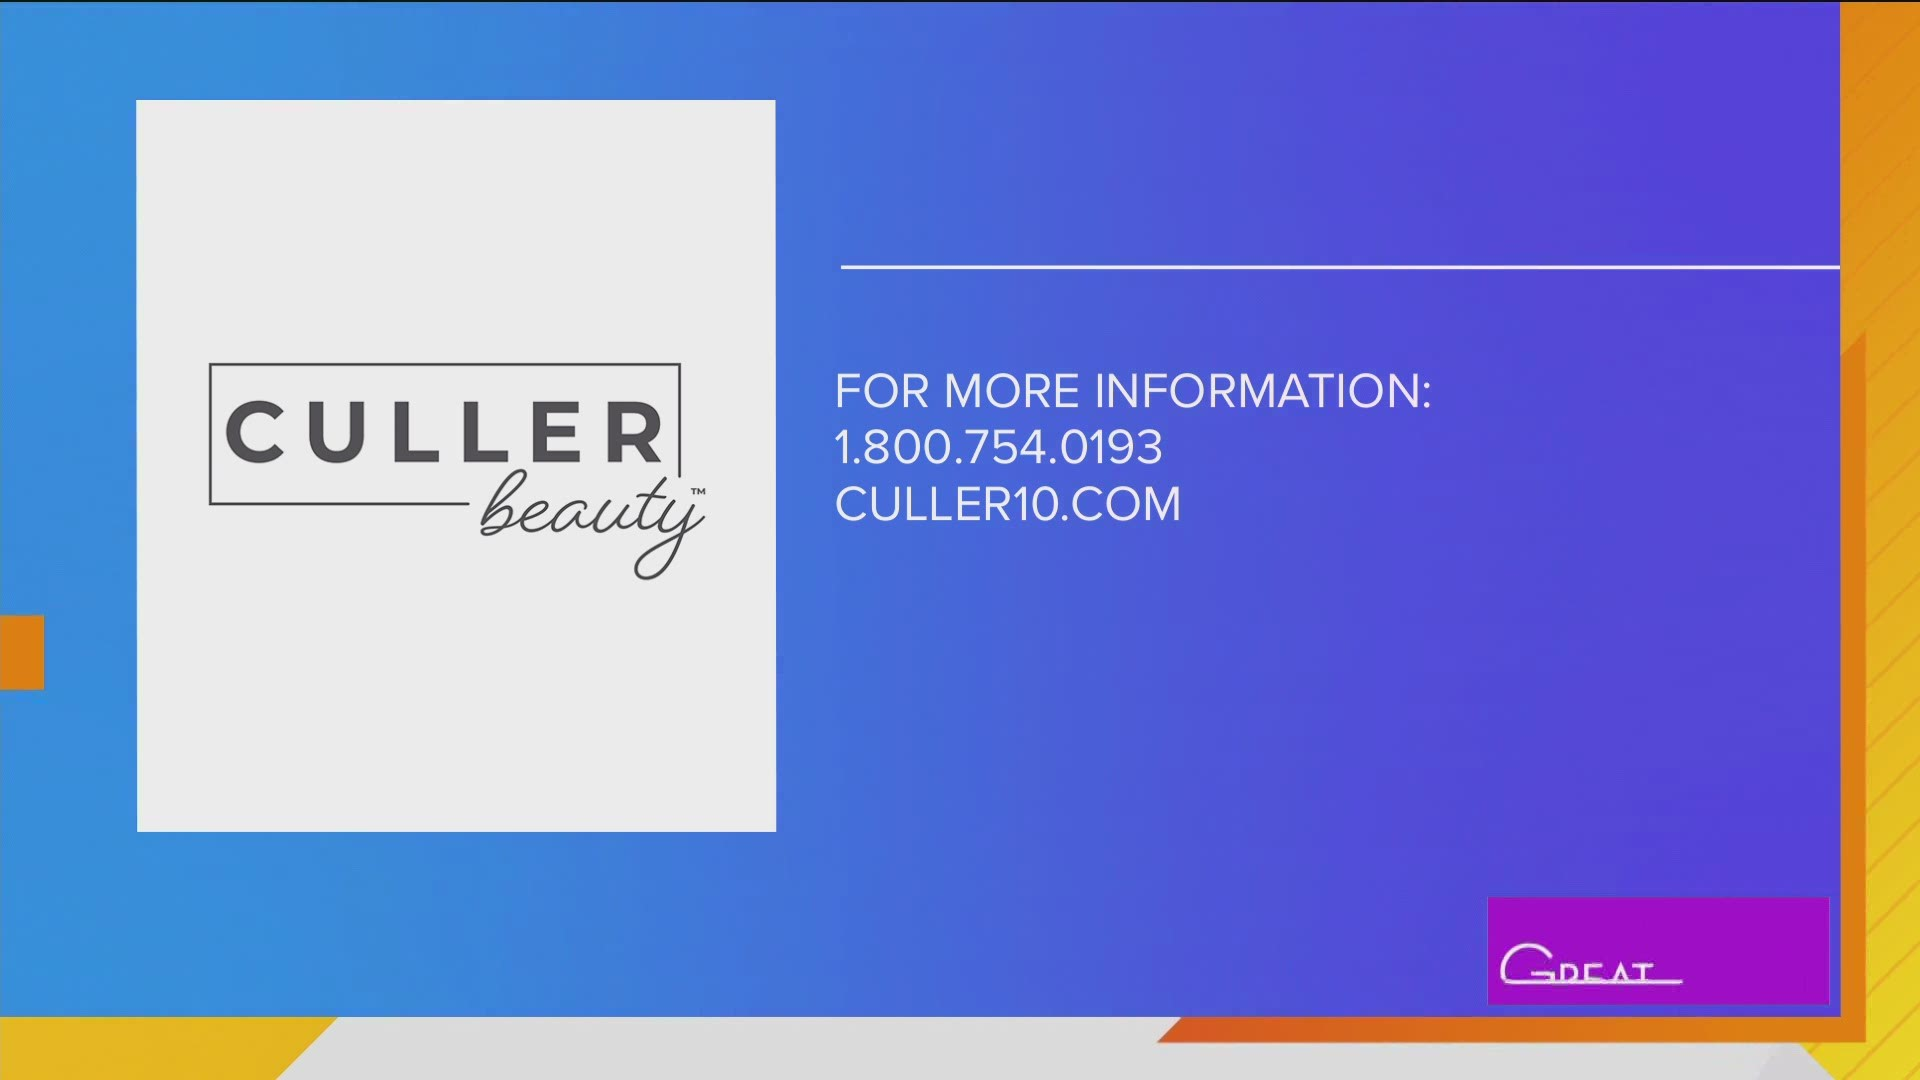 Great Day Sa Culler Beauty Redefines Full Coverage Foundation Kens5 Com